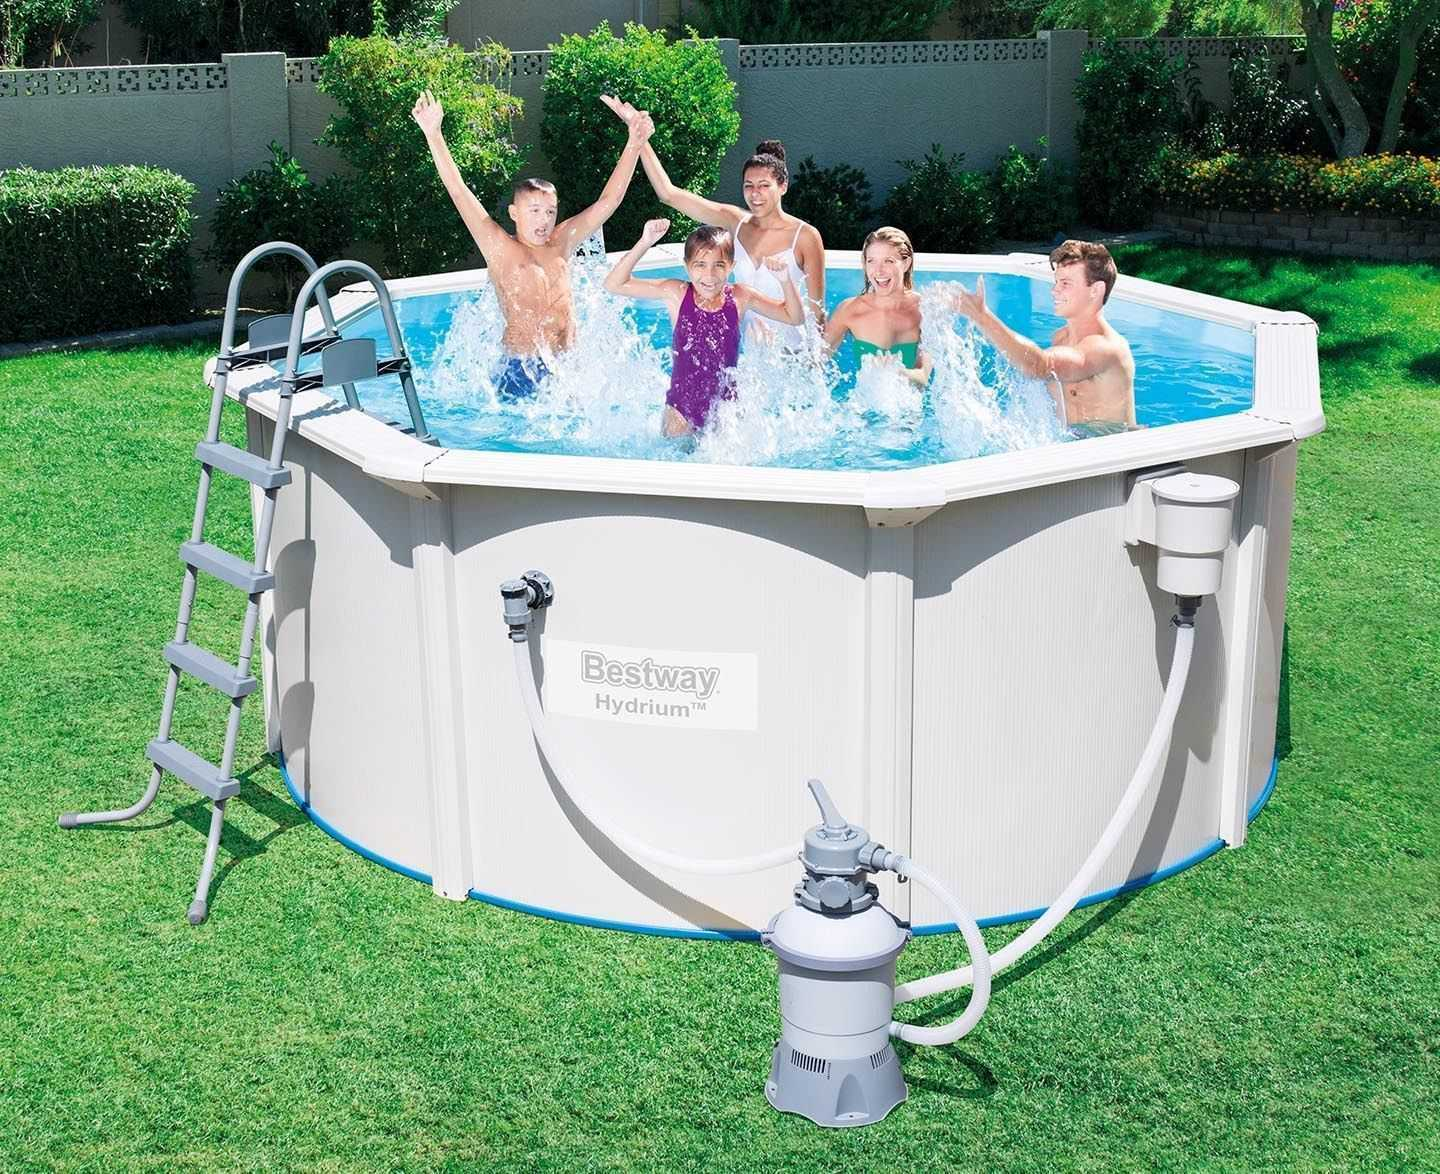 Bestway Pools The Range Bestway Hydrium Above Ground Swimming Pool Sand Filter 16